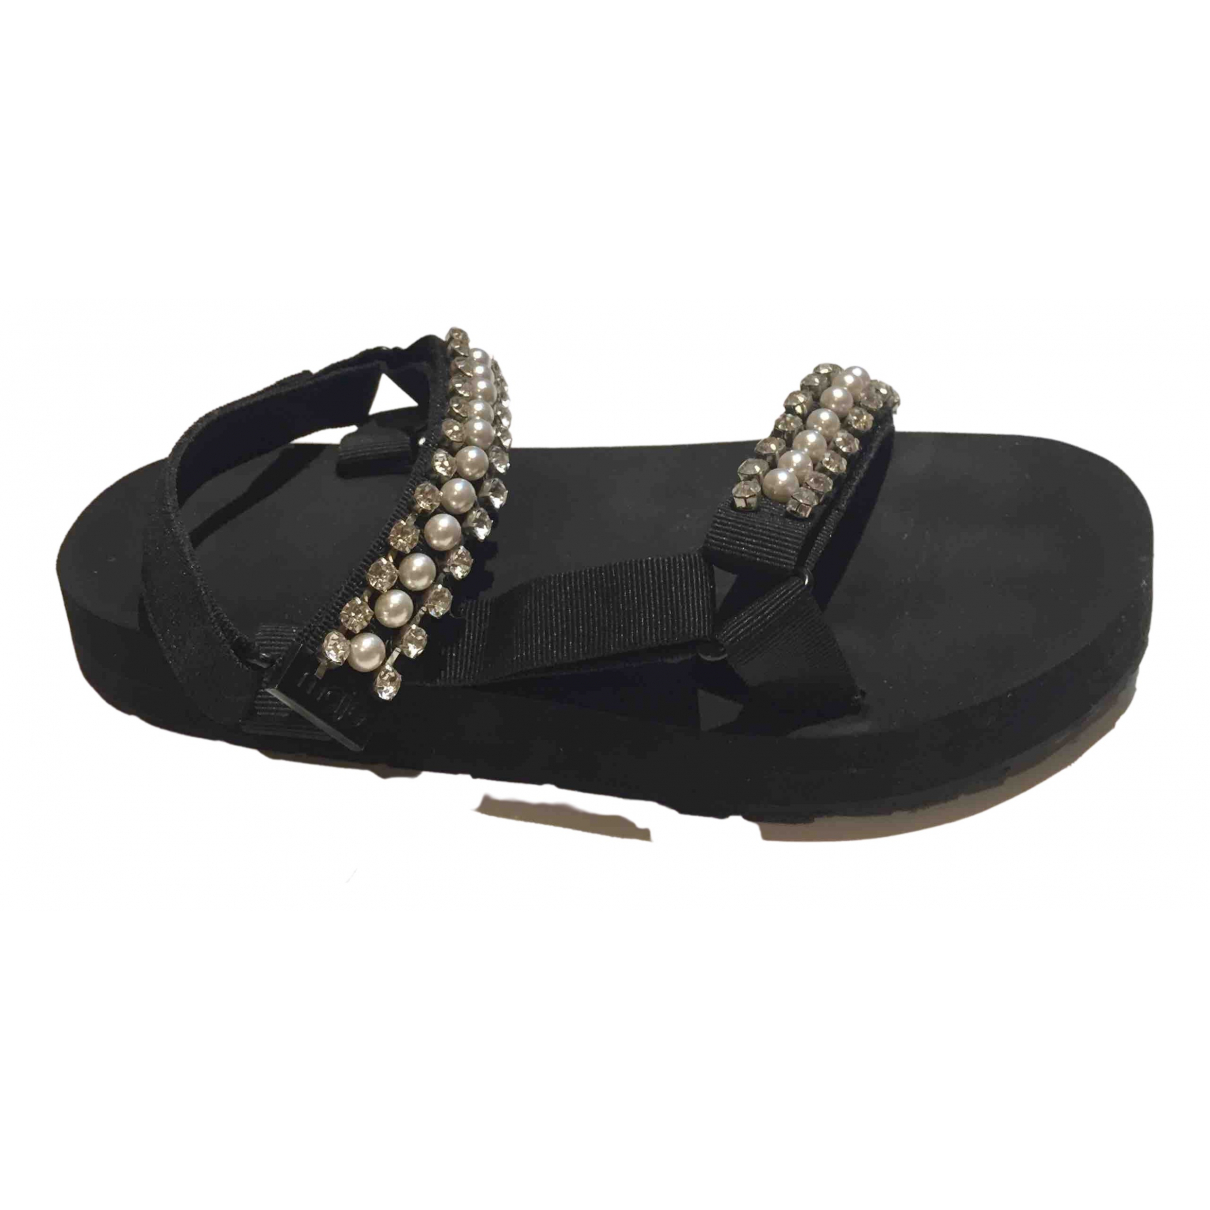 Maje Spring Summer 2020 Black Sandals for Women 39 EU